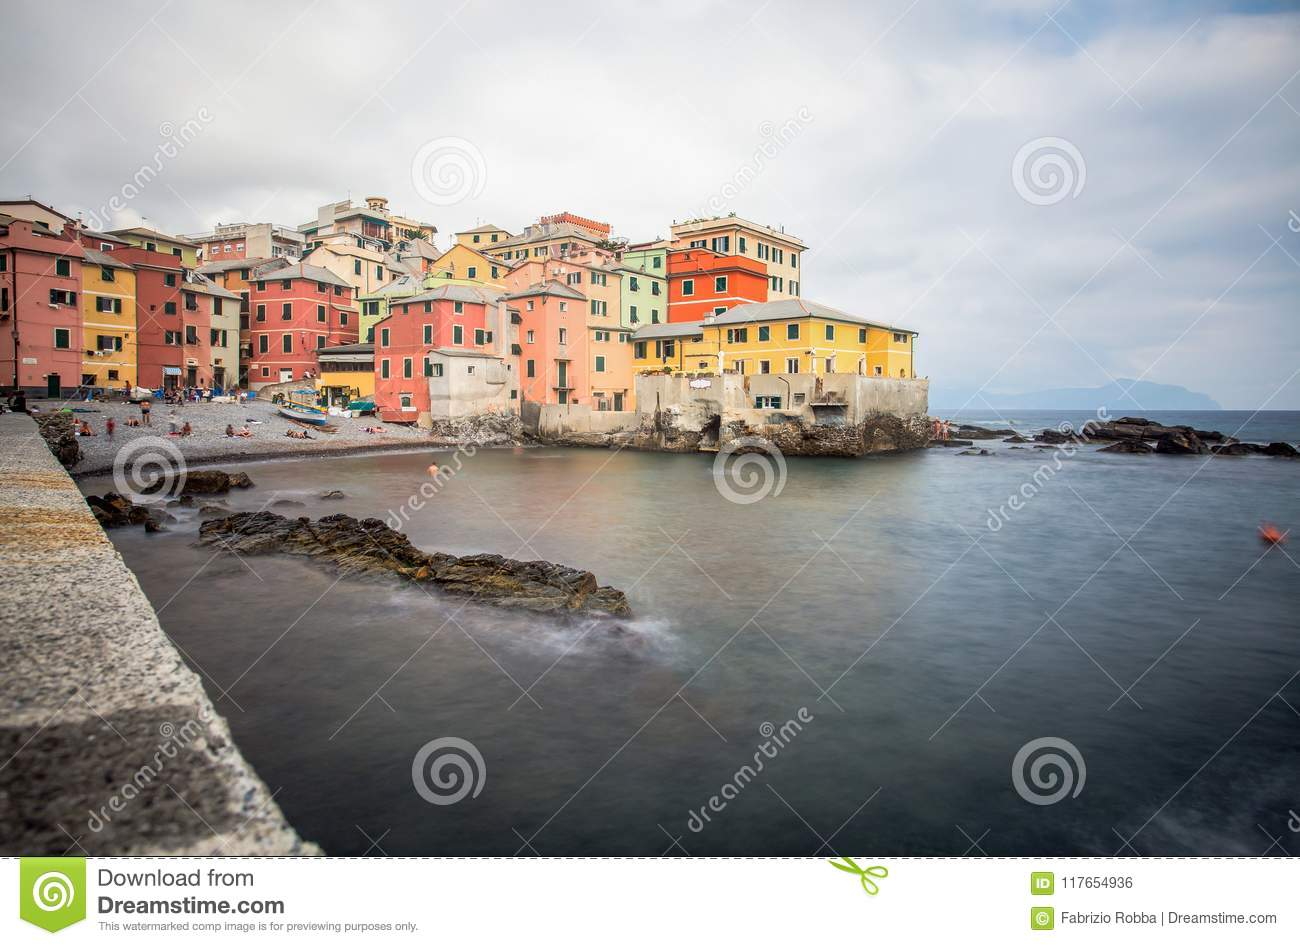 View of Boccadasse in Genoa Genova quarter, looks like a small village surrounded by a city. Italy.